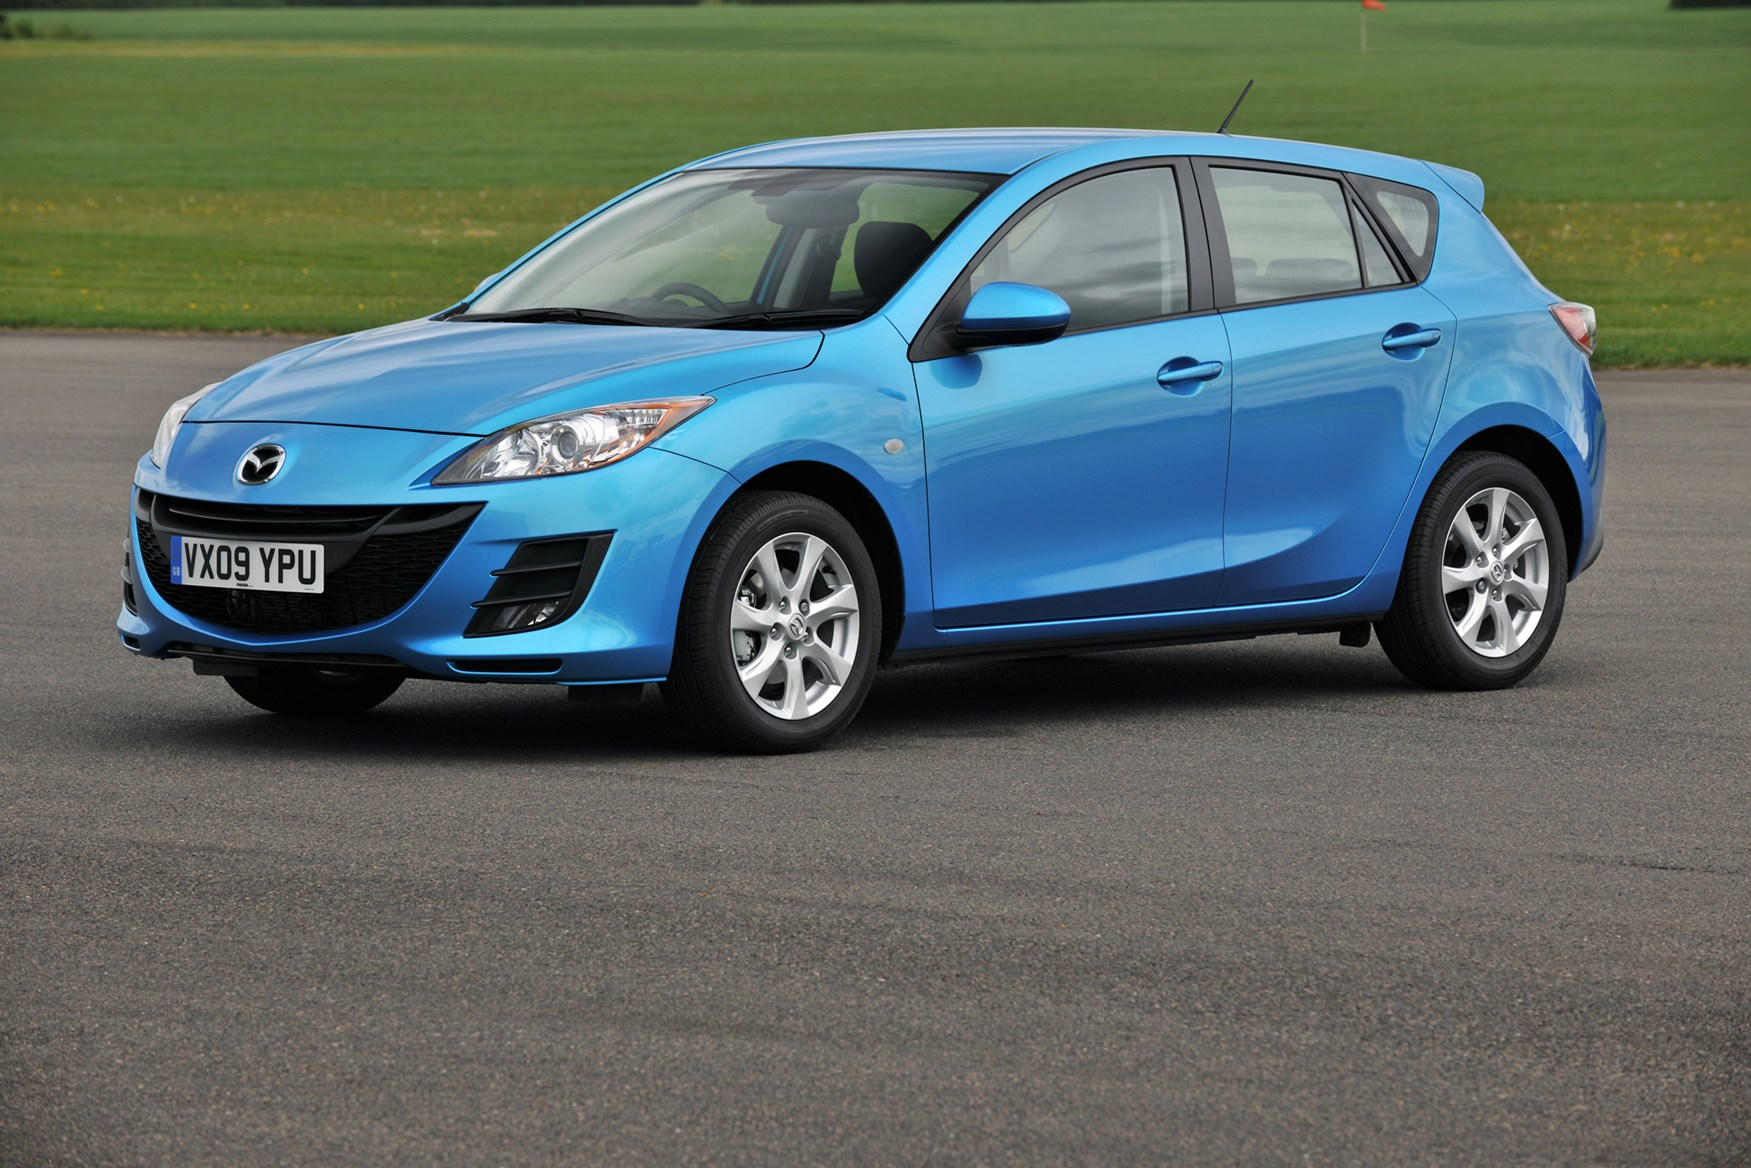 mazda 3 hatchback review 2009 2013 parkers. Black Bedroom Furniture Sets. Home Design Ideas